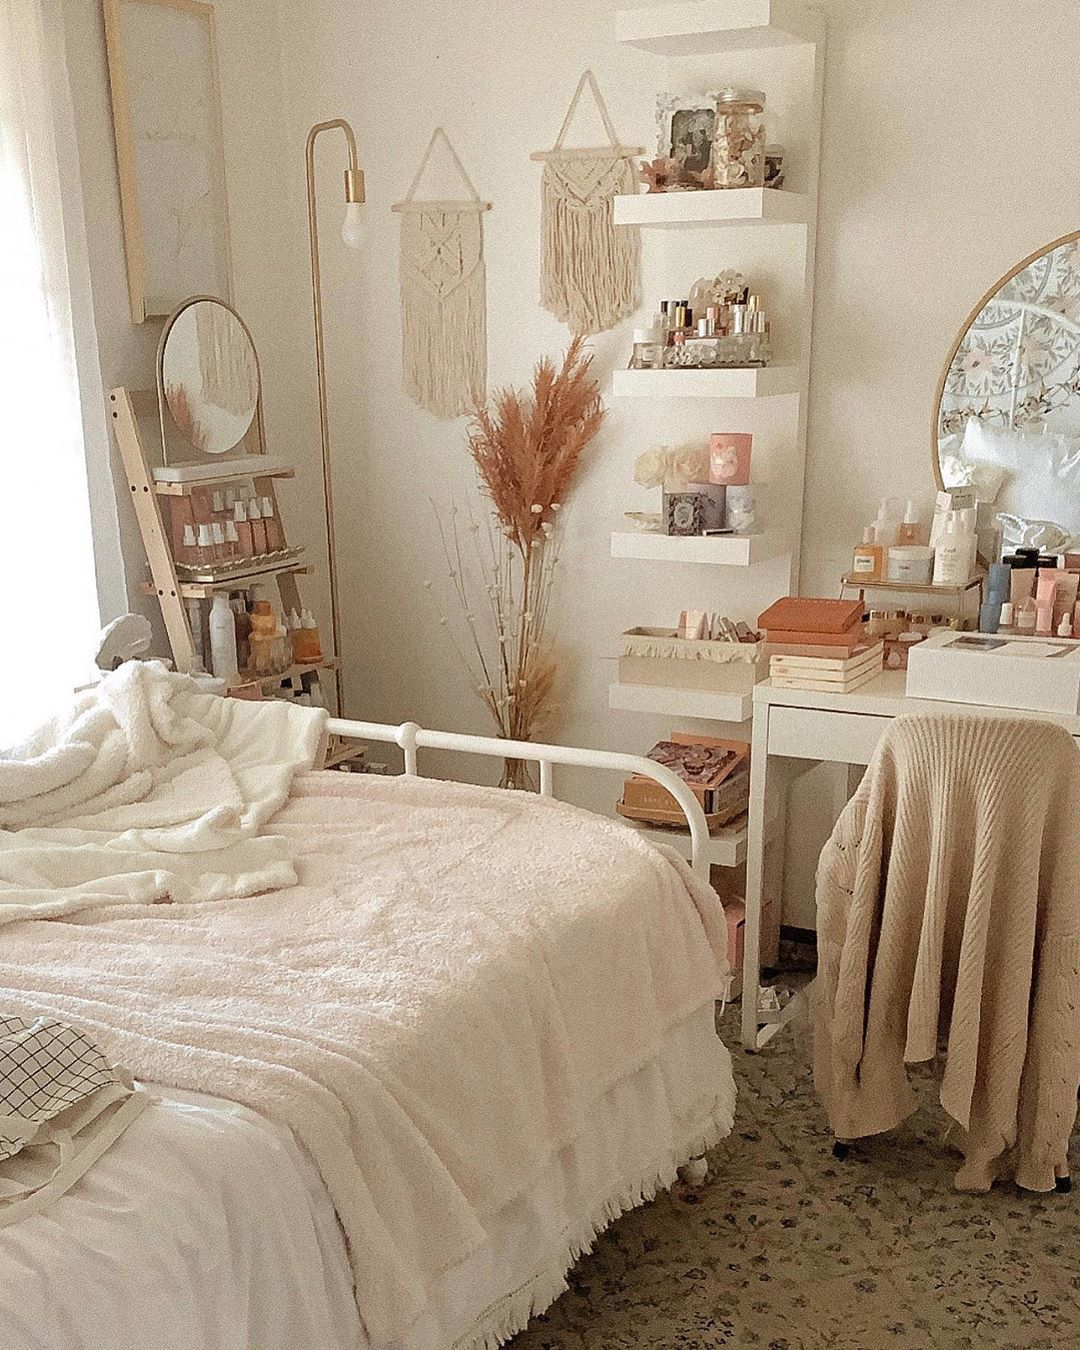 Pin on Aesthetic rooms